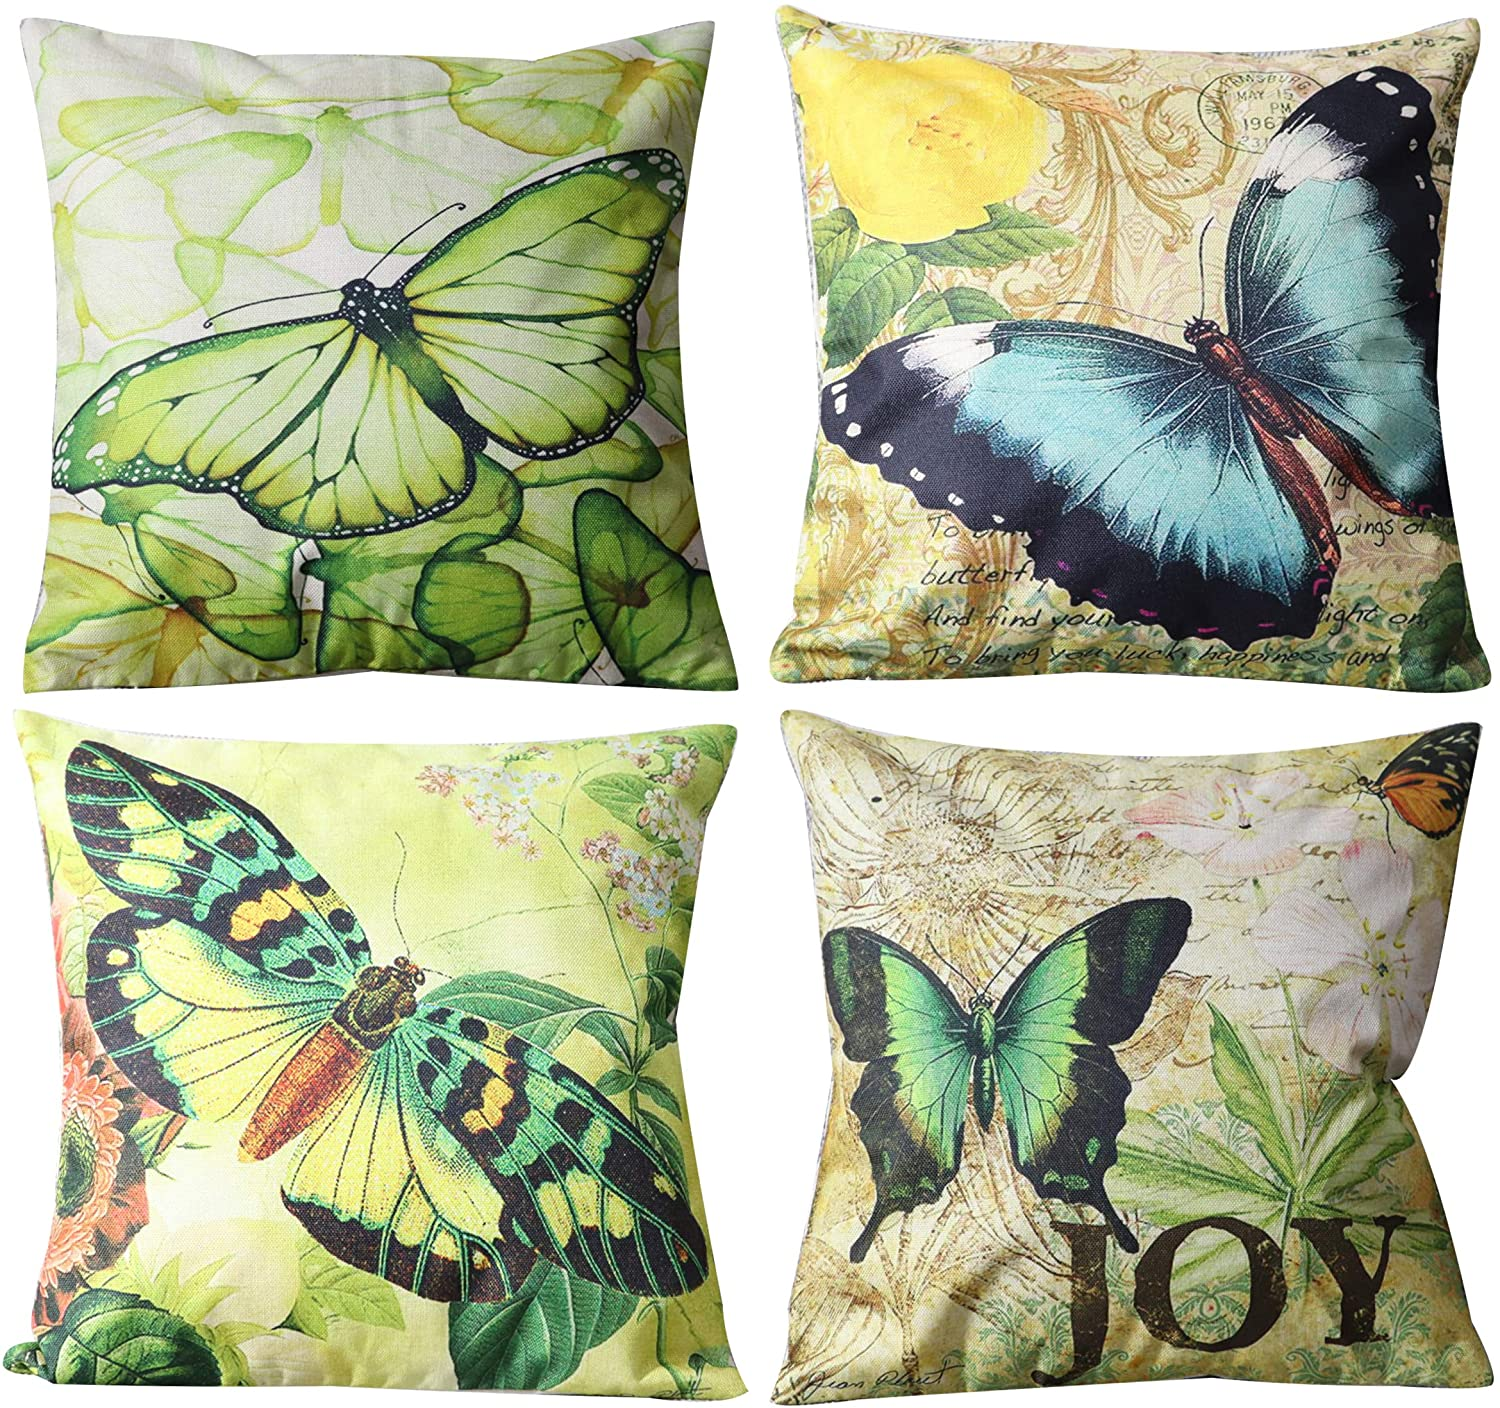 UnionKK 4 PCS Sofa Decorative Throw Pillow Cover Butterfly Print Decor Square Cushion Covers Linen Outdoor Balcony Pillows Case for Sofa Bed Chair 18x18 Inch (Butterfly)